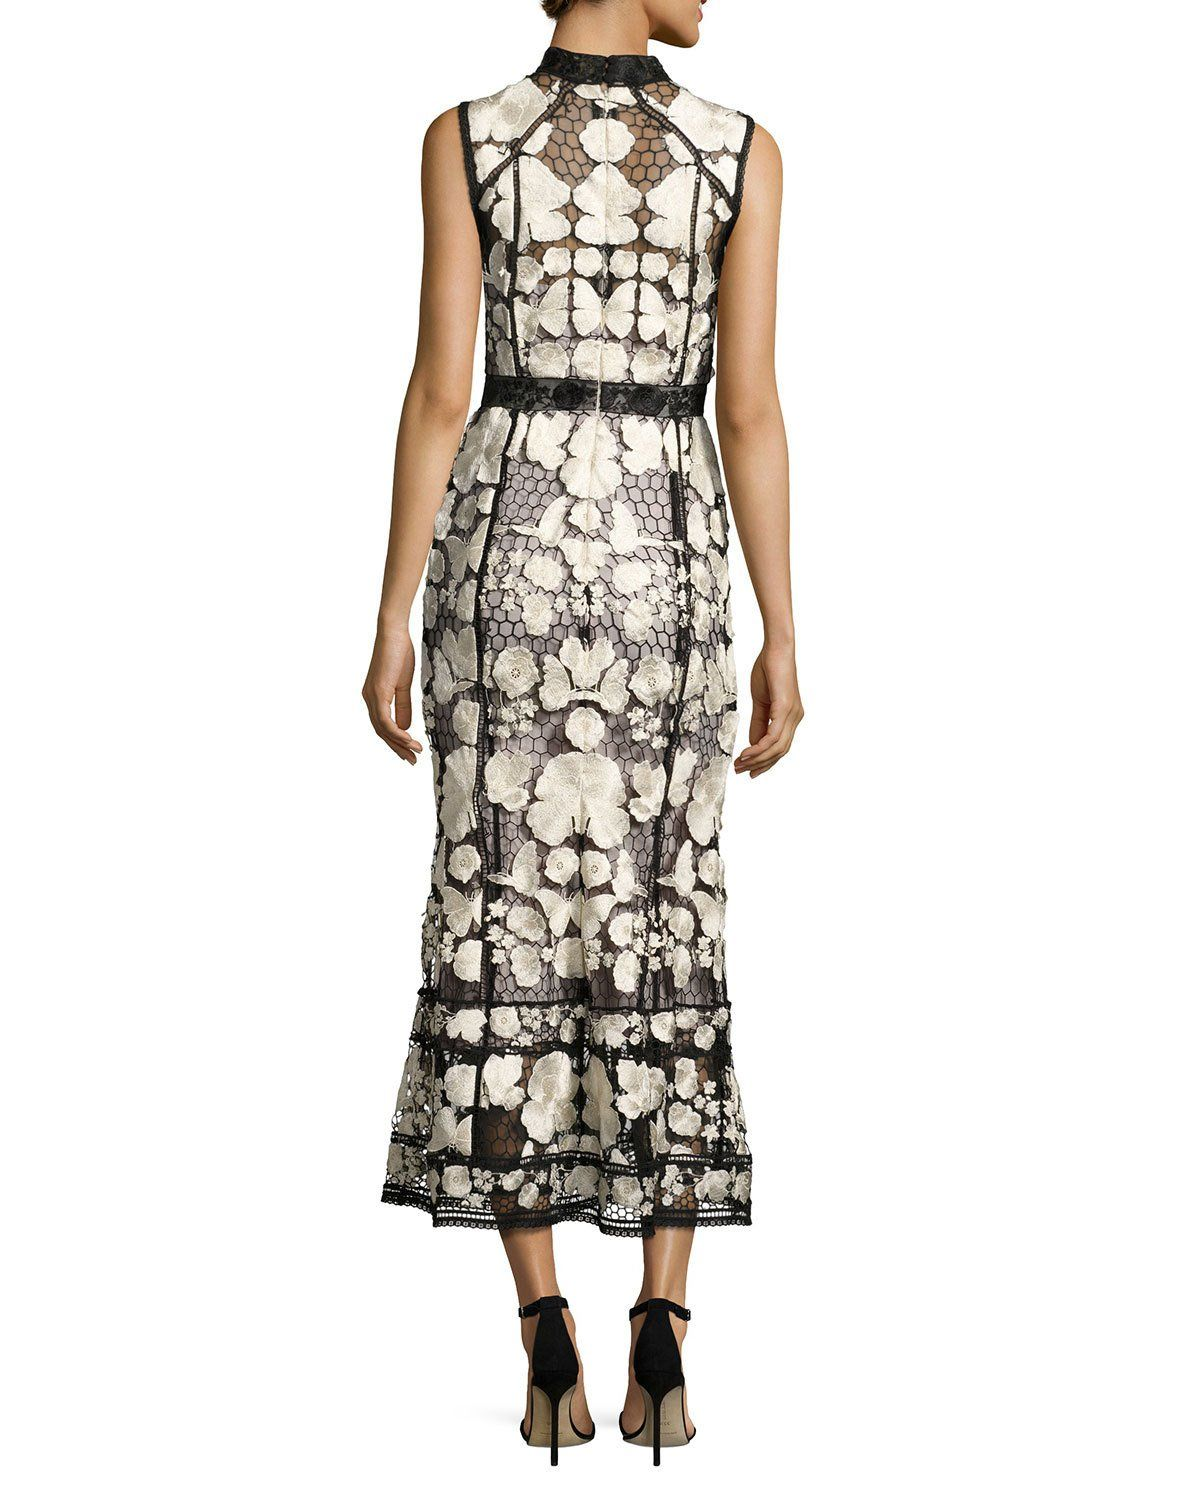 a77b2a9e Marchesa Notte Sleeveless Embroidered Lace Cocktail Dress, Black/White